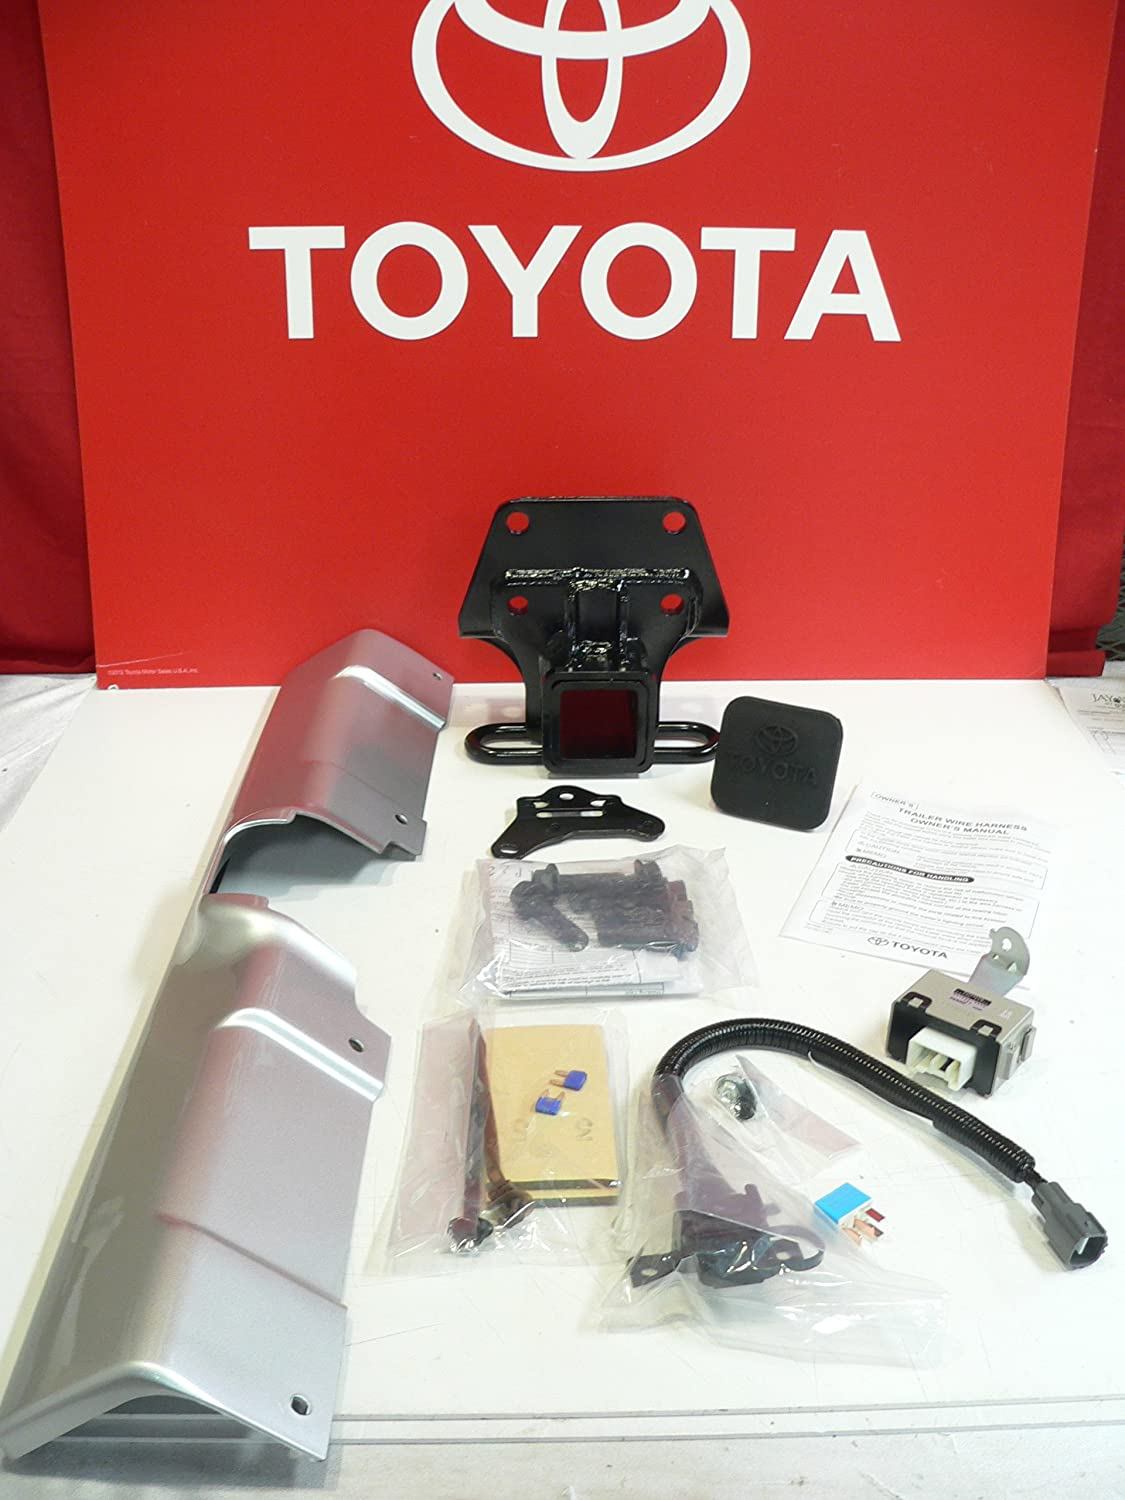 91I2j3LkAWL._SL1500_ amazon com oem toyota fj cruiser hitch and harness kit automotive  at aneh.co